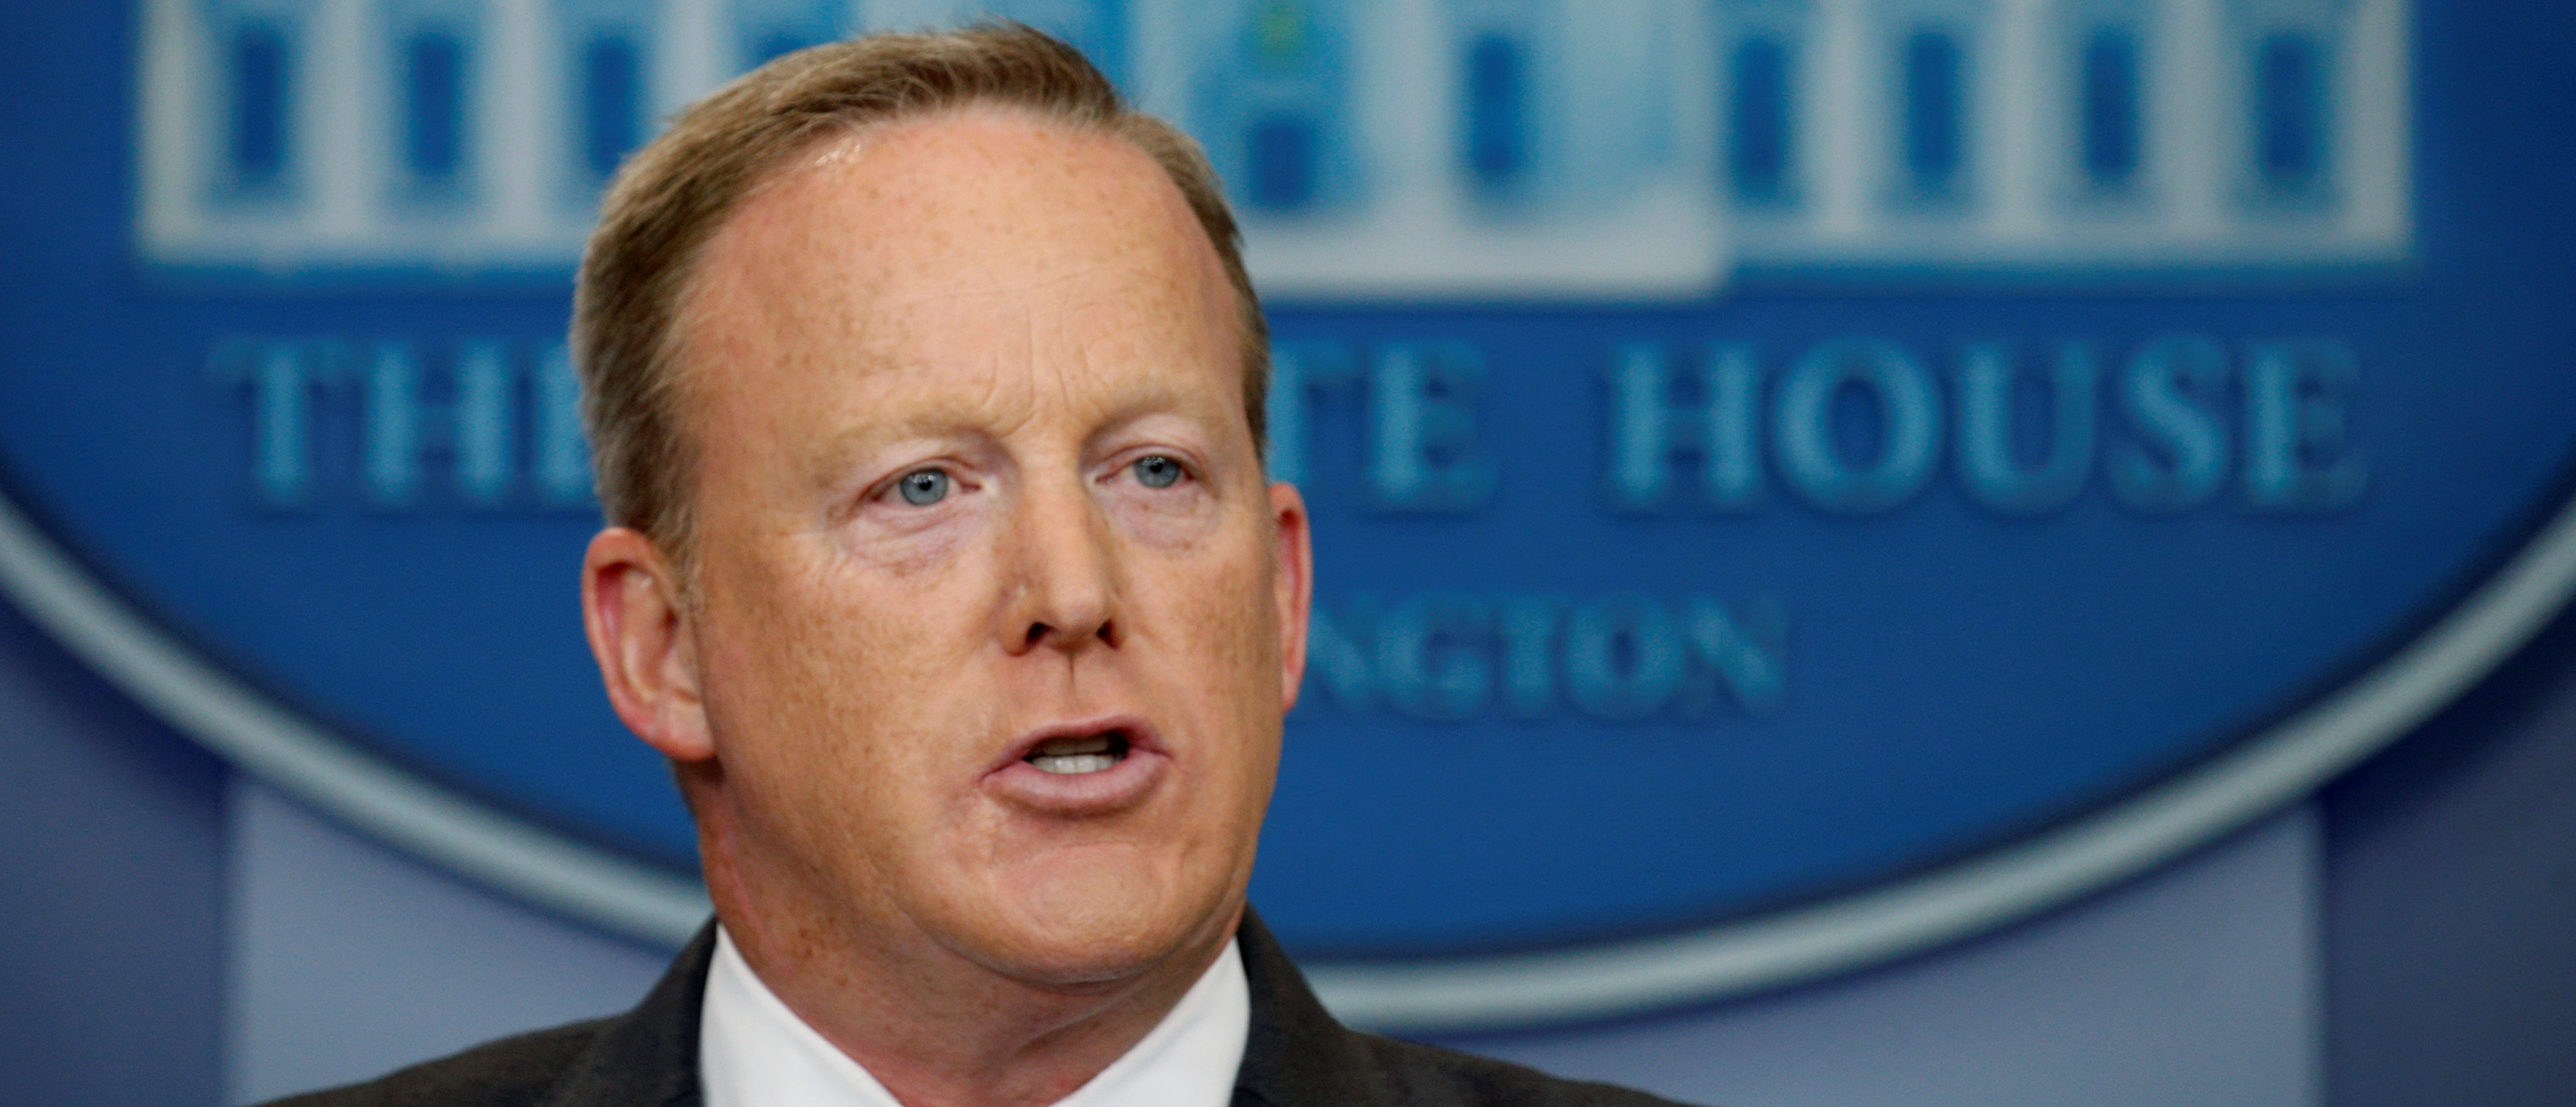 Sean Spicer during a White House press briefing in July 2017 (Reuters, 06/26/18)